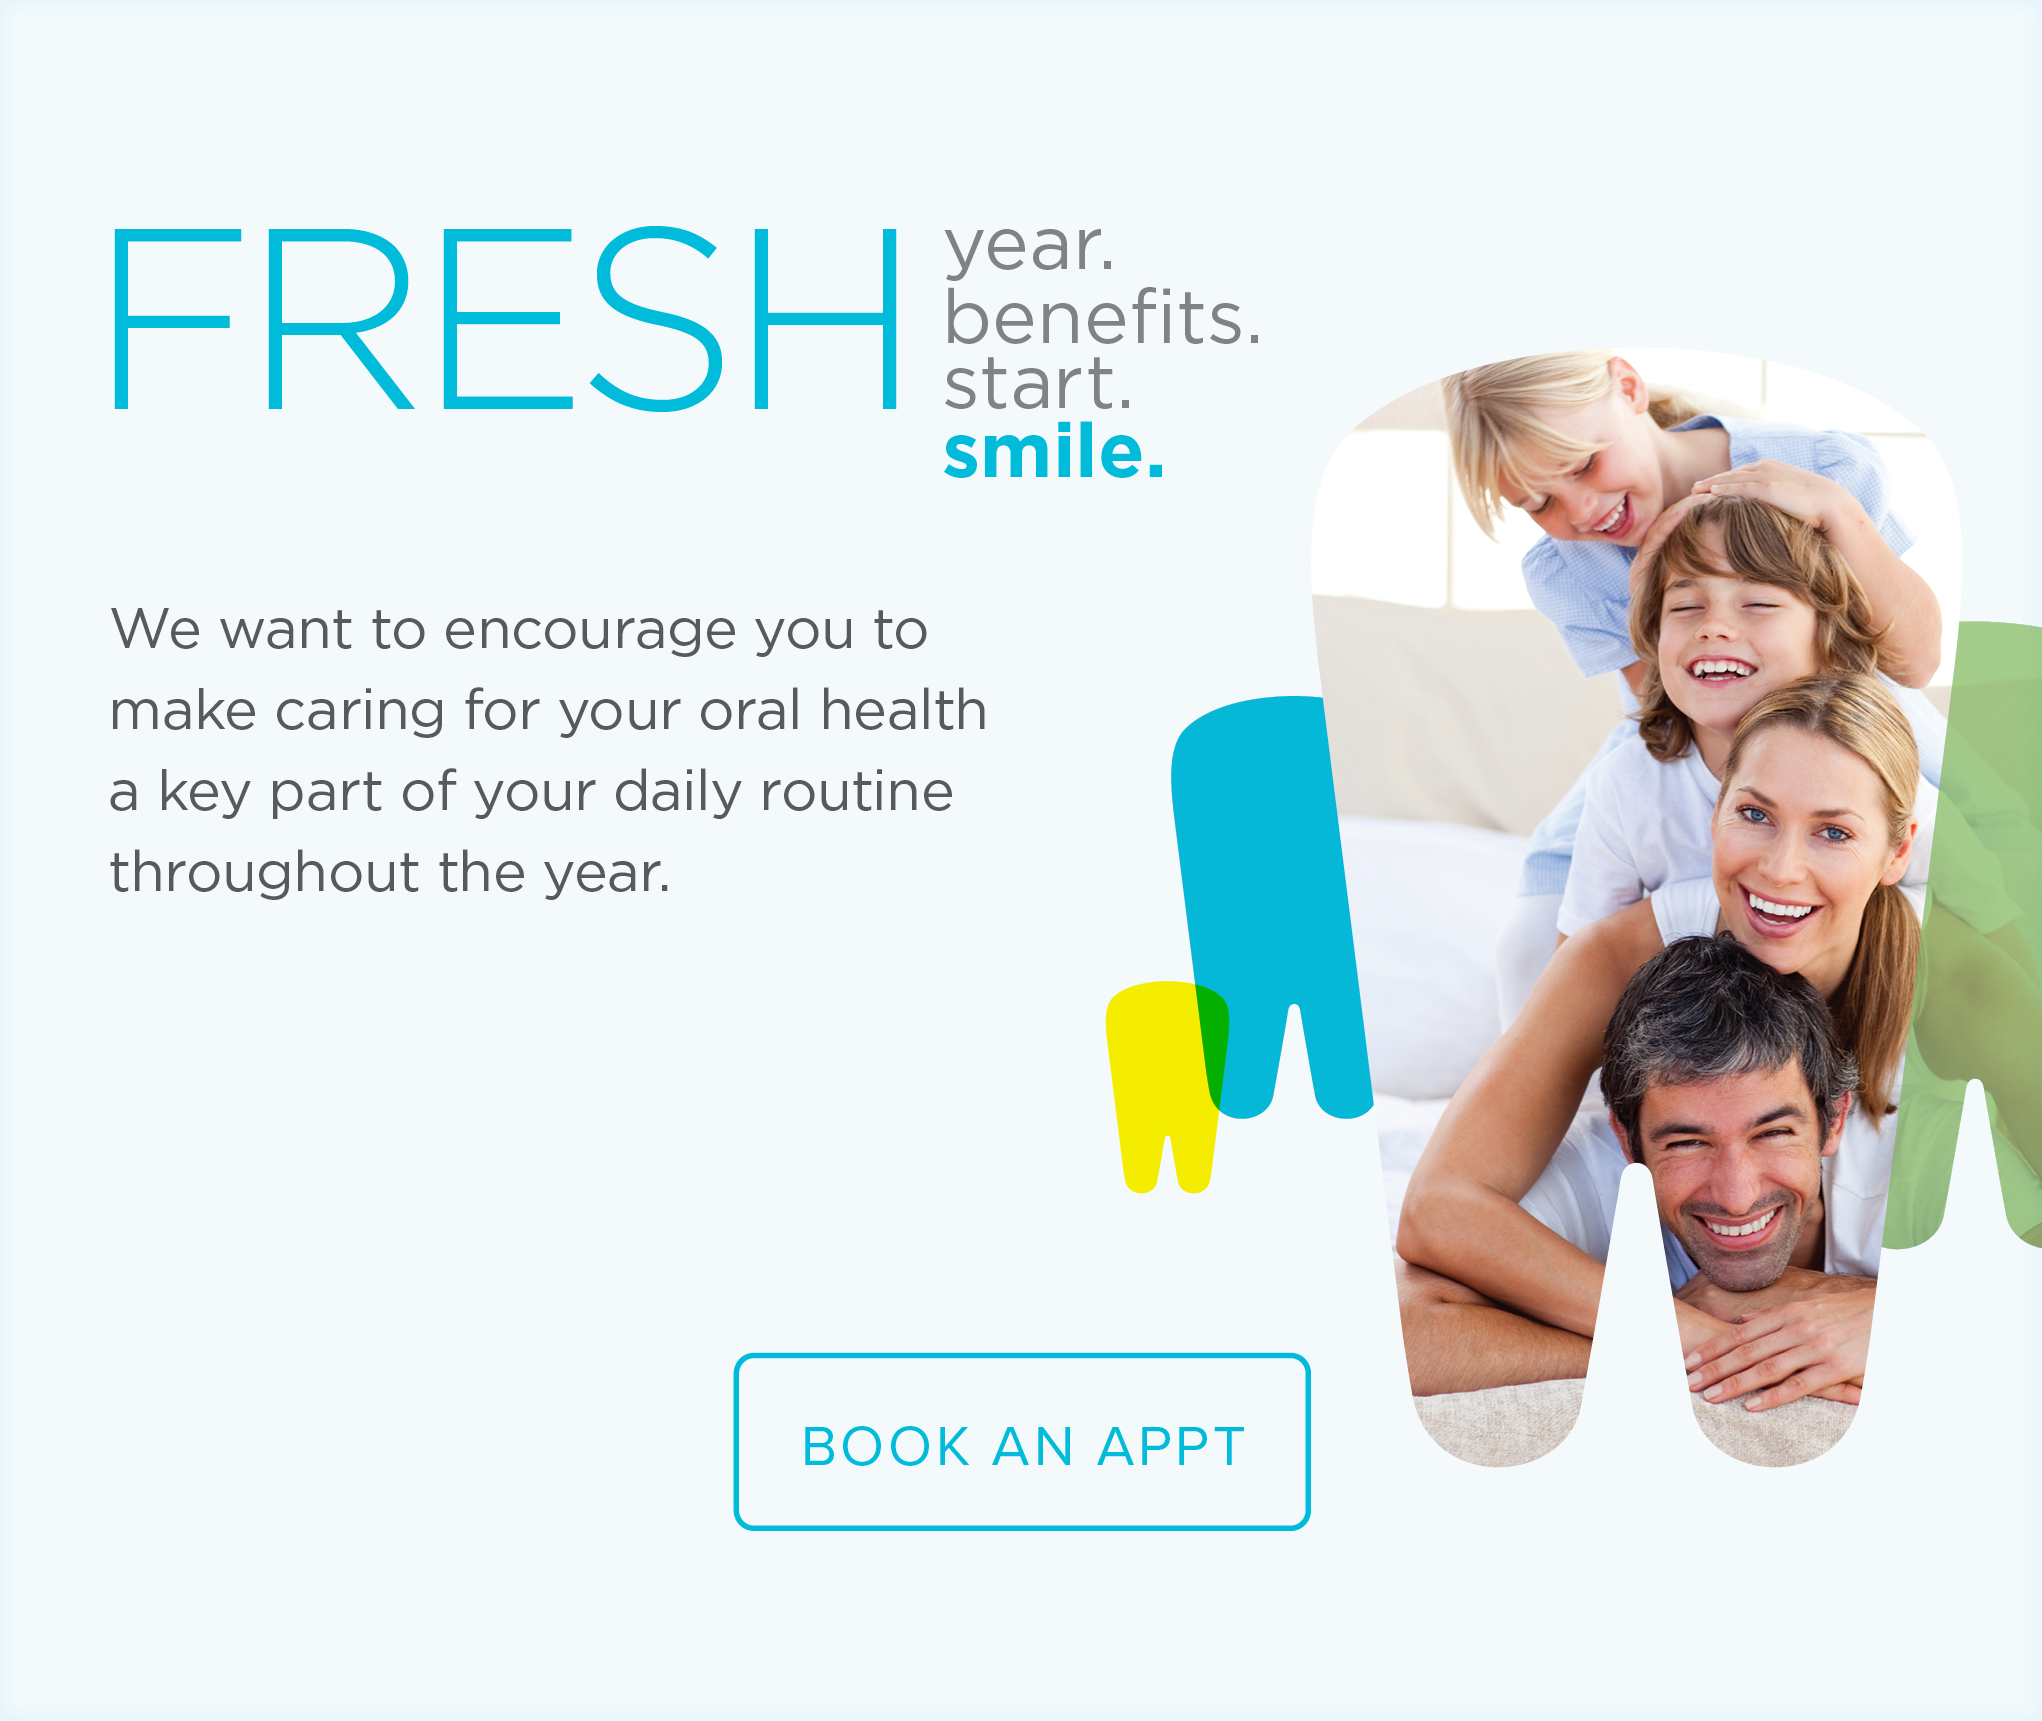 San Dimas Dental Office and Orthodontics - Make the Most of Your Benefits